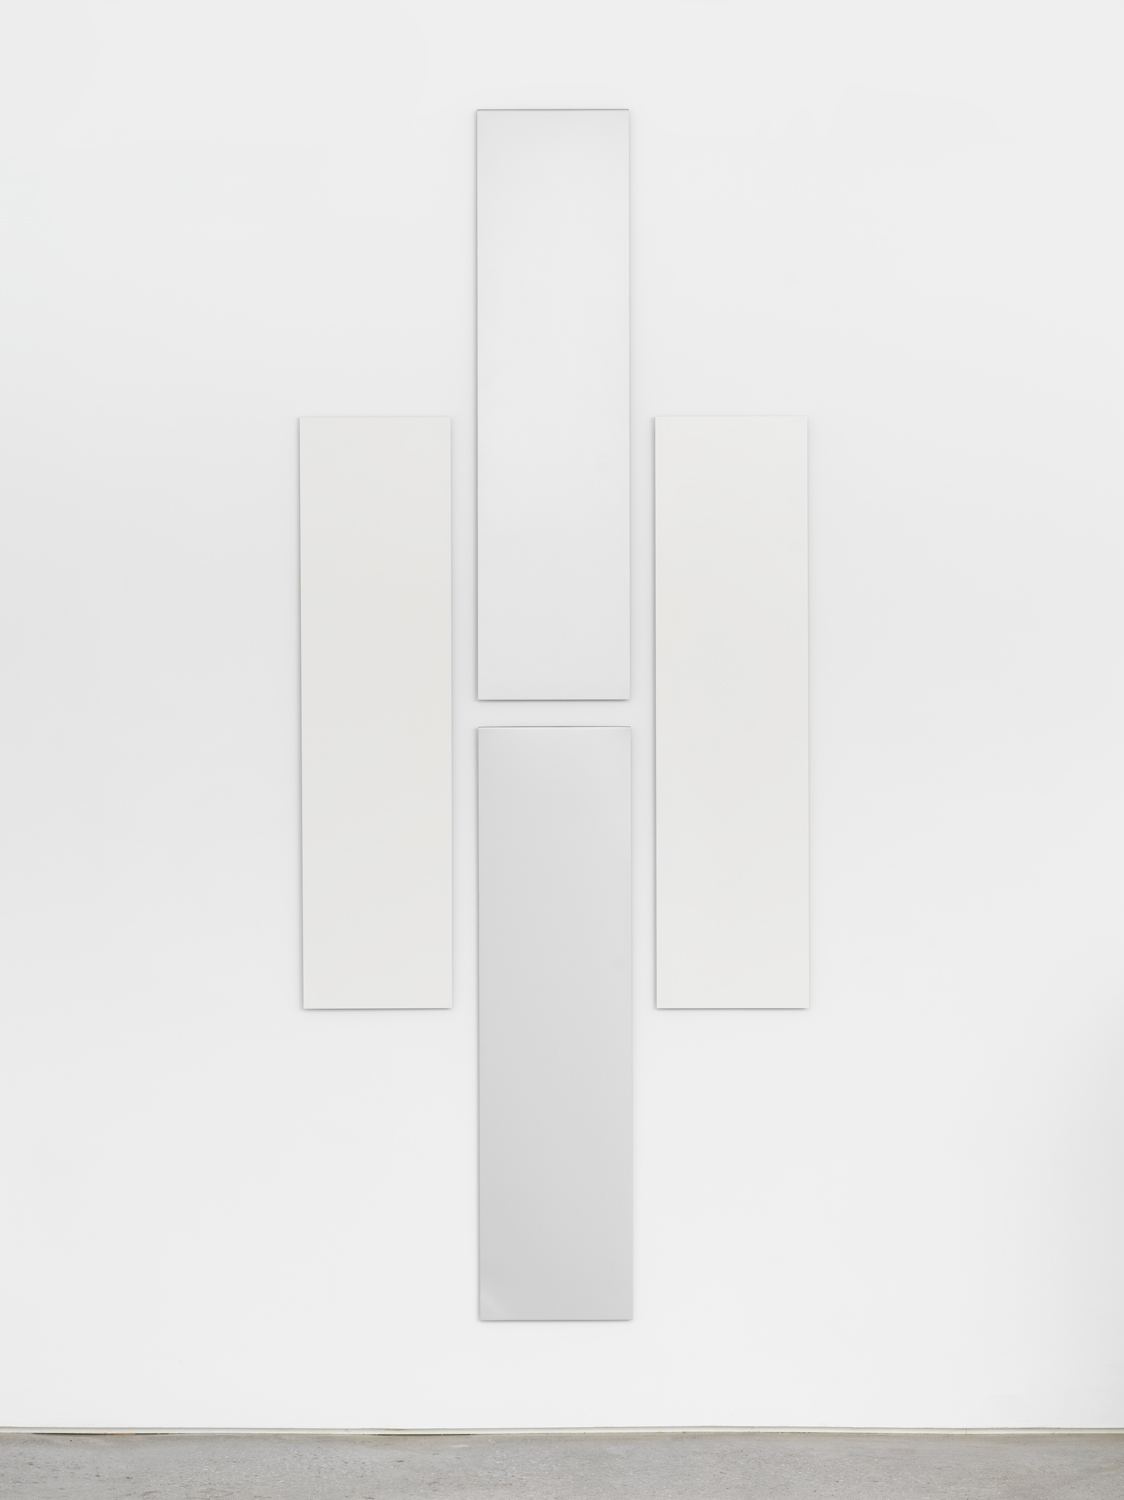 Don Dudley, Untitled (Aluminum Module), 1974/2019, Acrylic lacquer on aluminum, each module 46 3/4 x 12 in., overall 95.5 x 40 in.